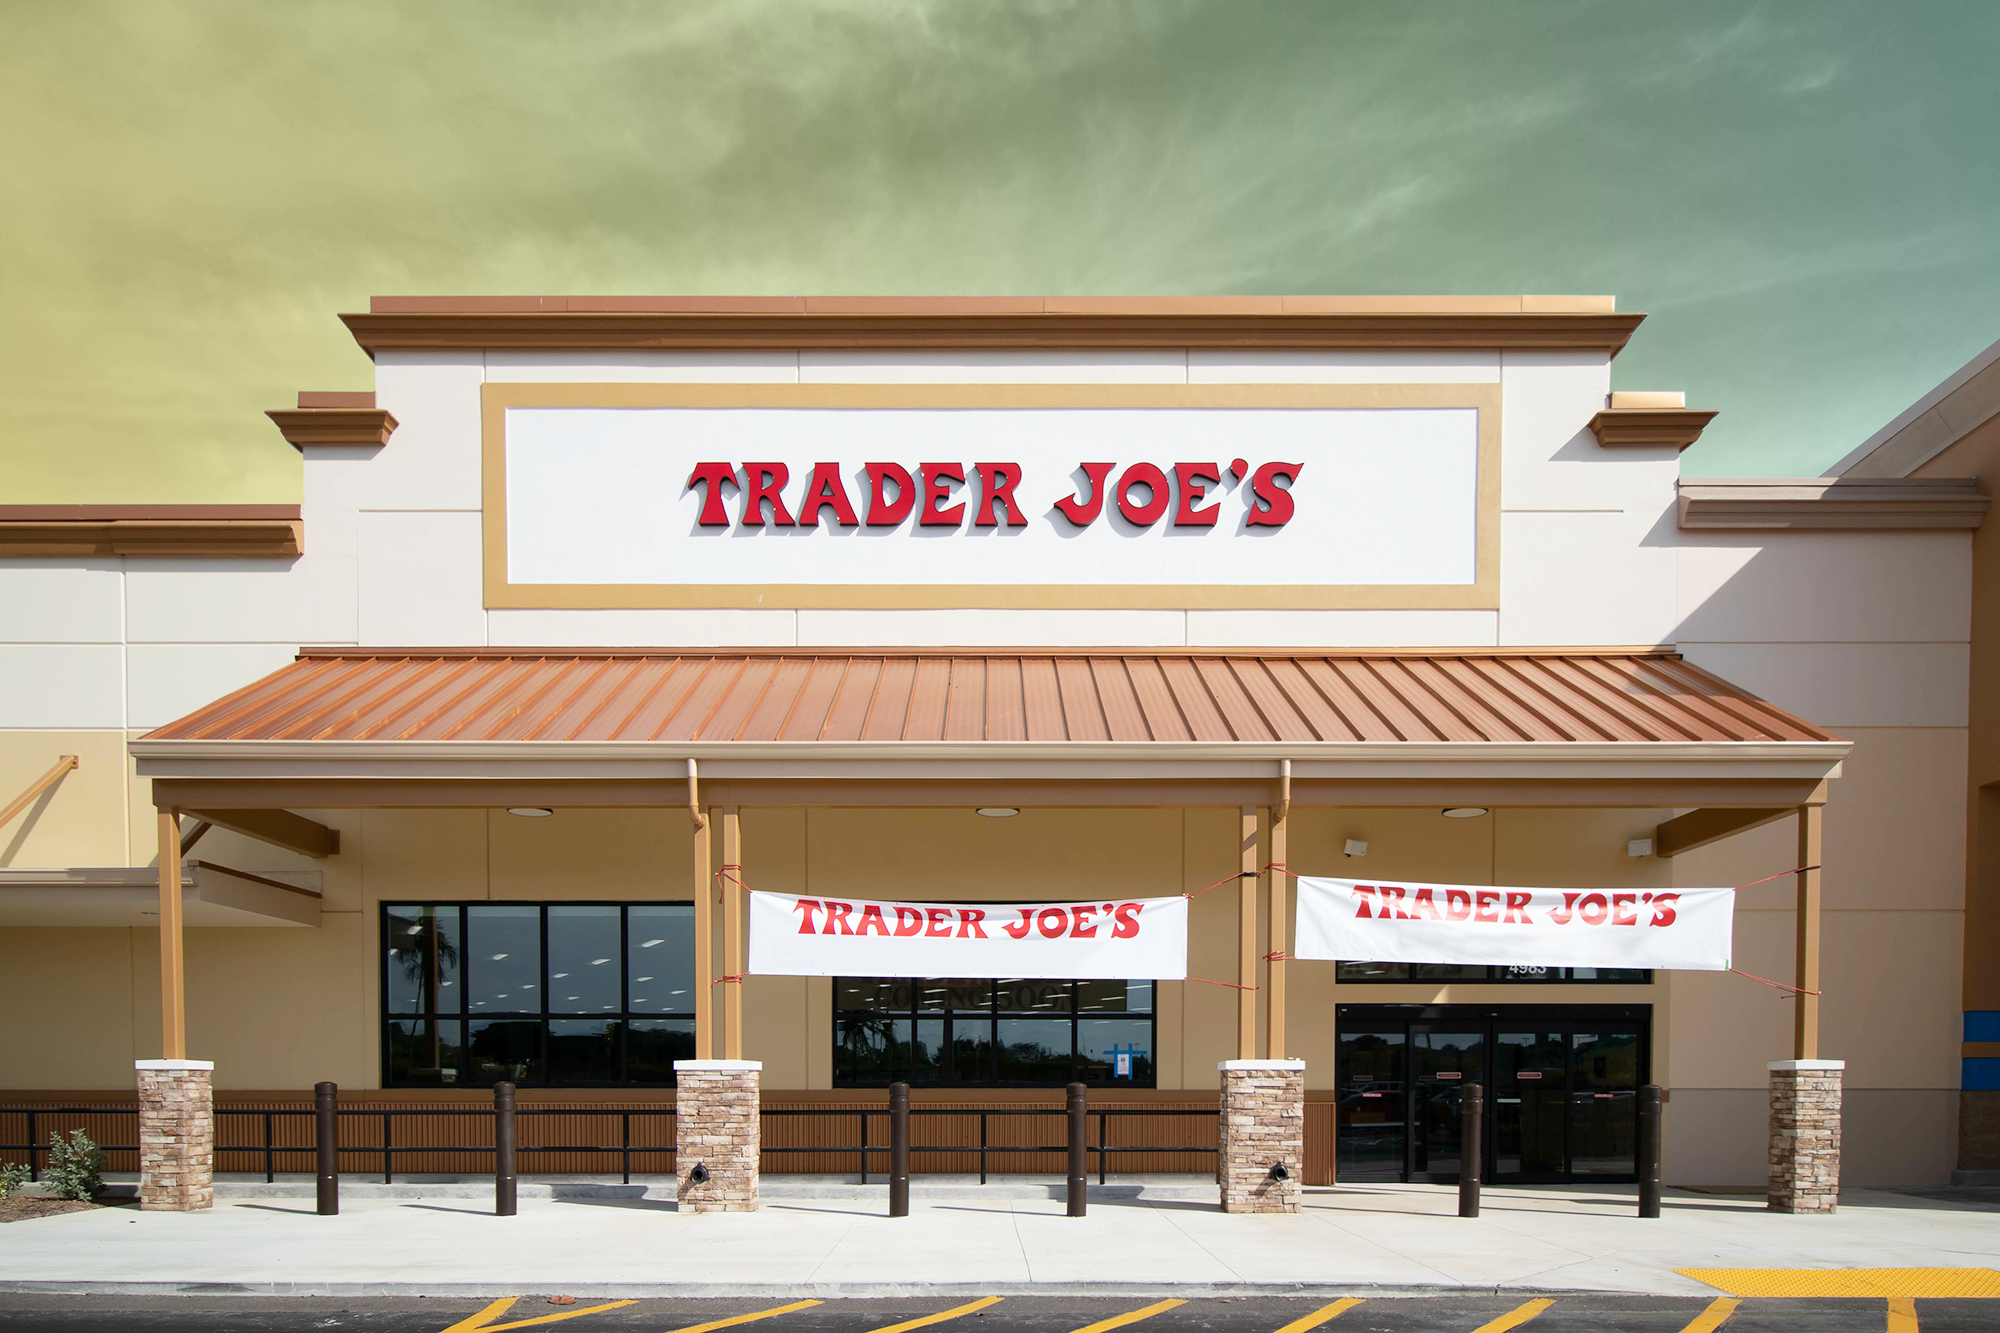 Trader Joe's storefront with a designed treatment